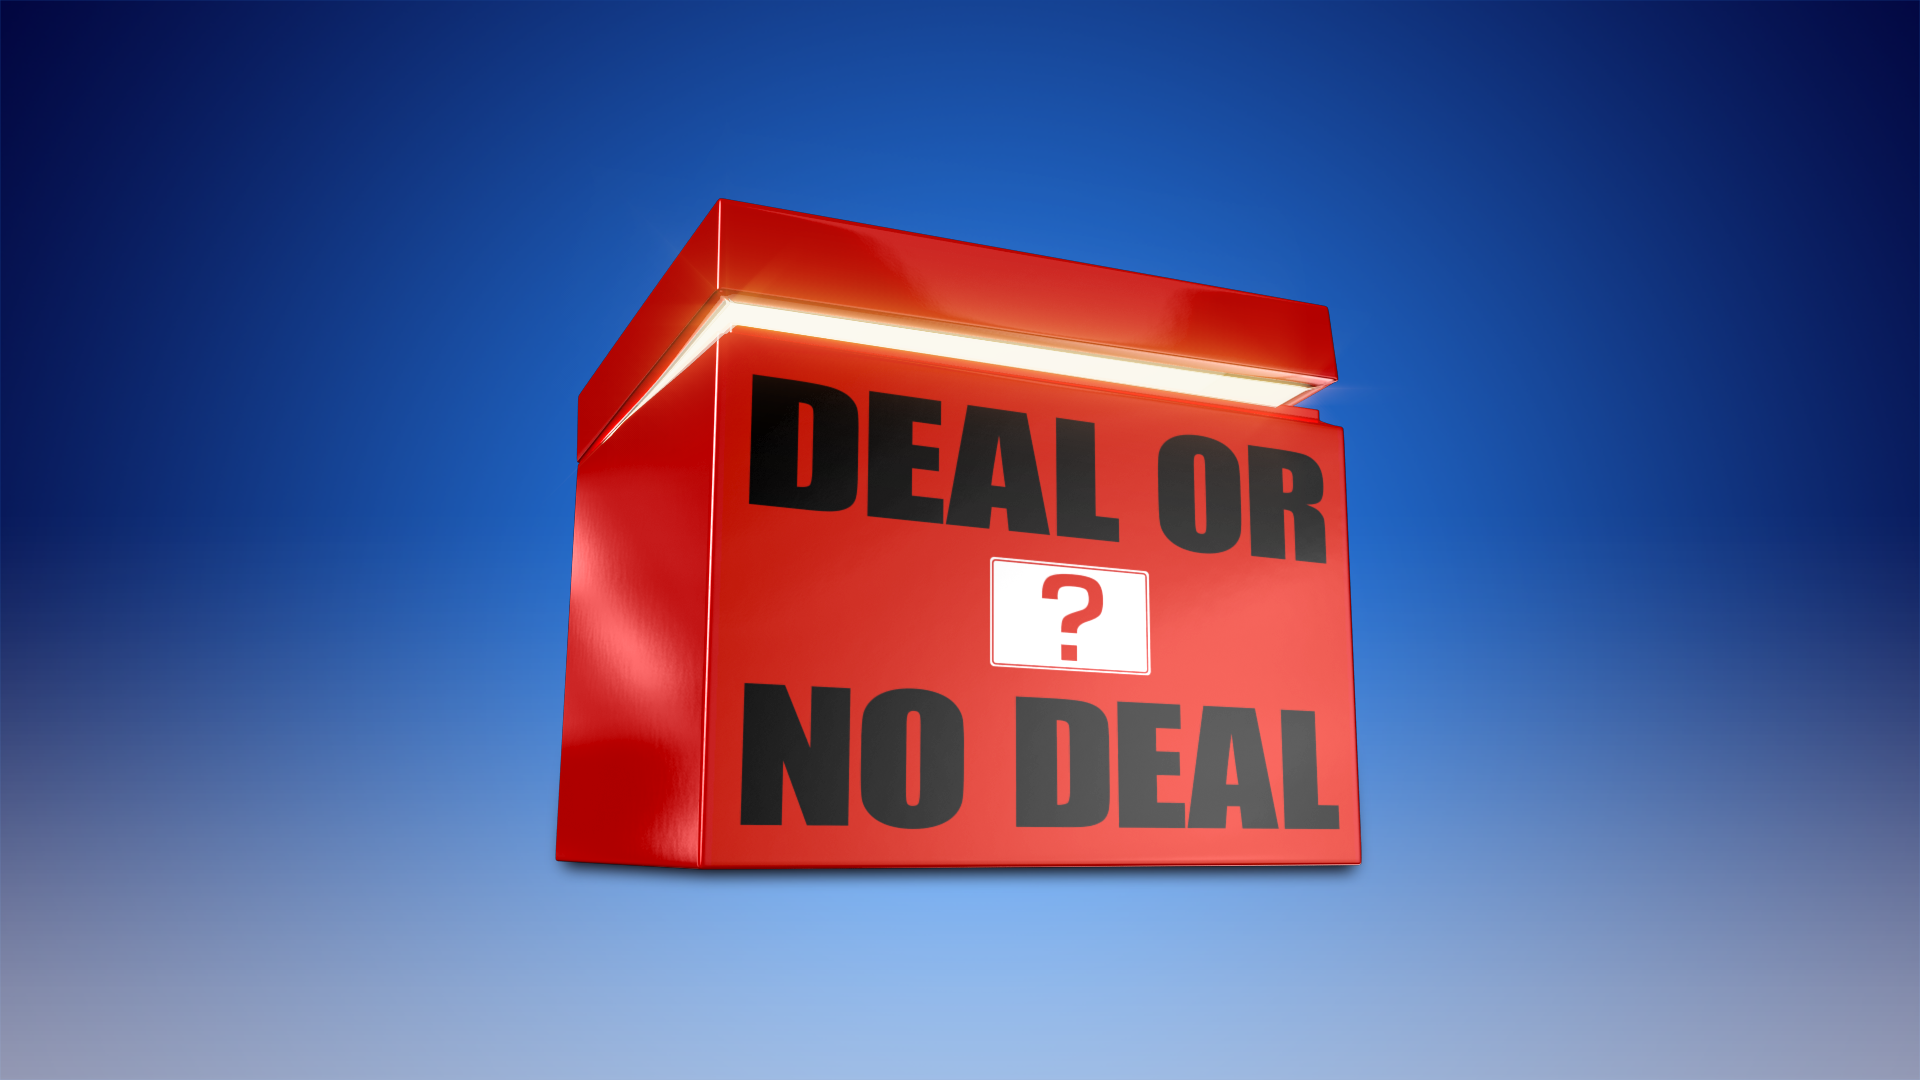 The Deal or No Deal logo.